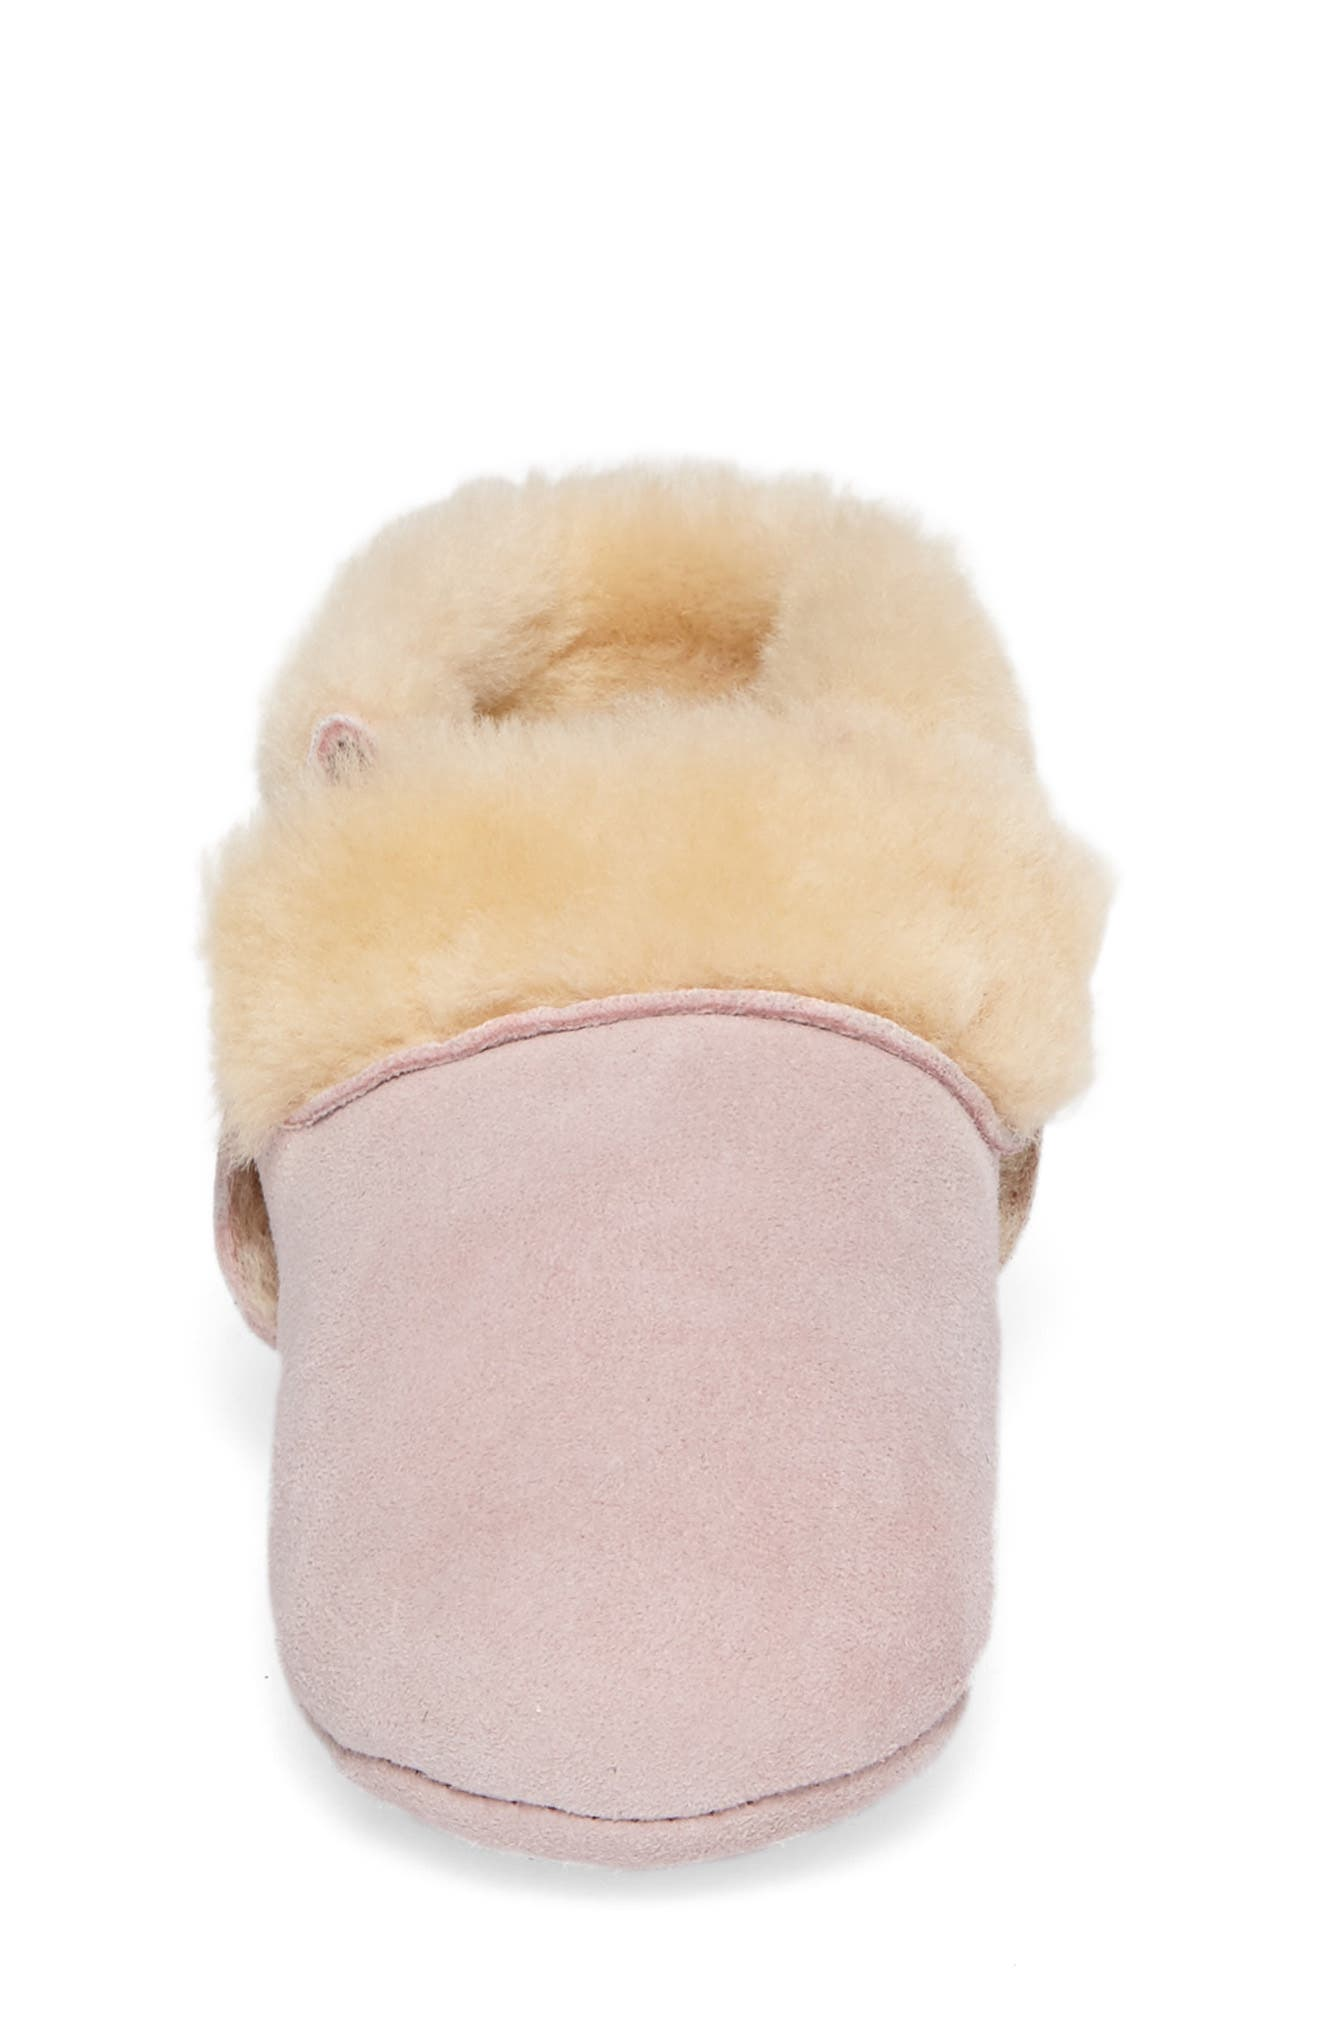 Solvi Genuine Shearling Low Cuffed Bootie,                             Alternate thumbnail 4, color,                             650